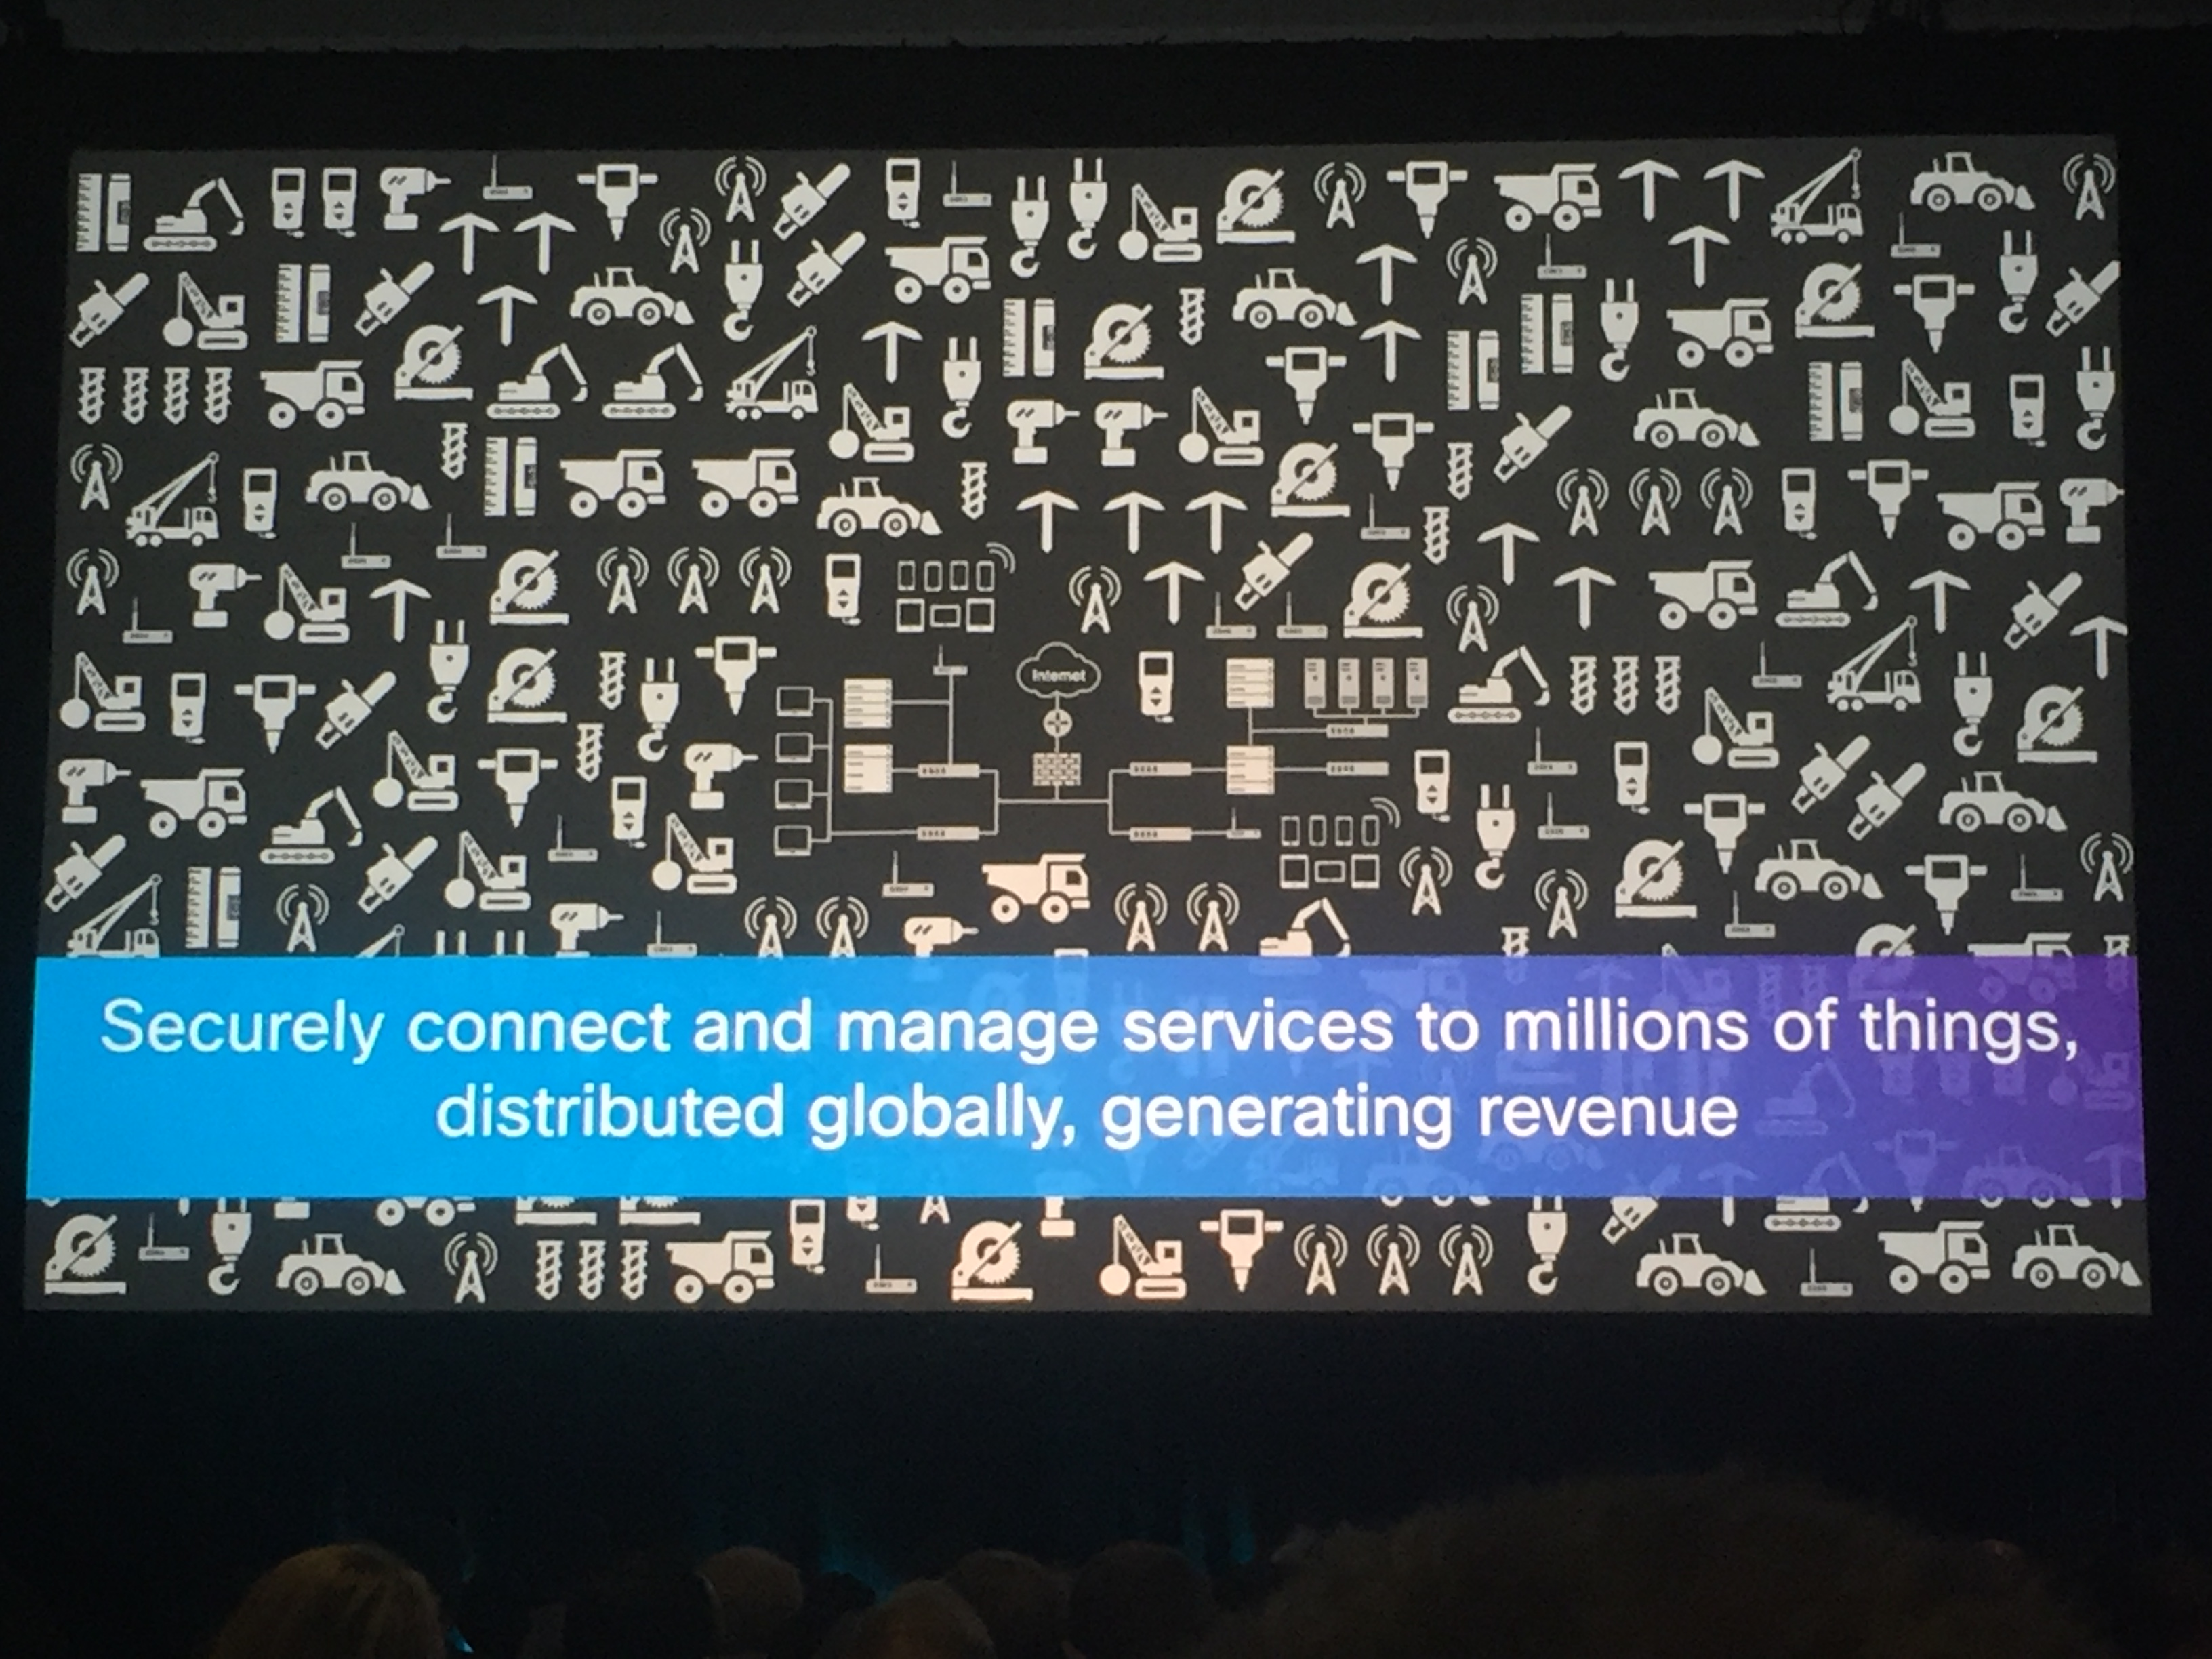 Cisco's take on the Internet of Things